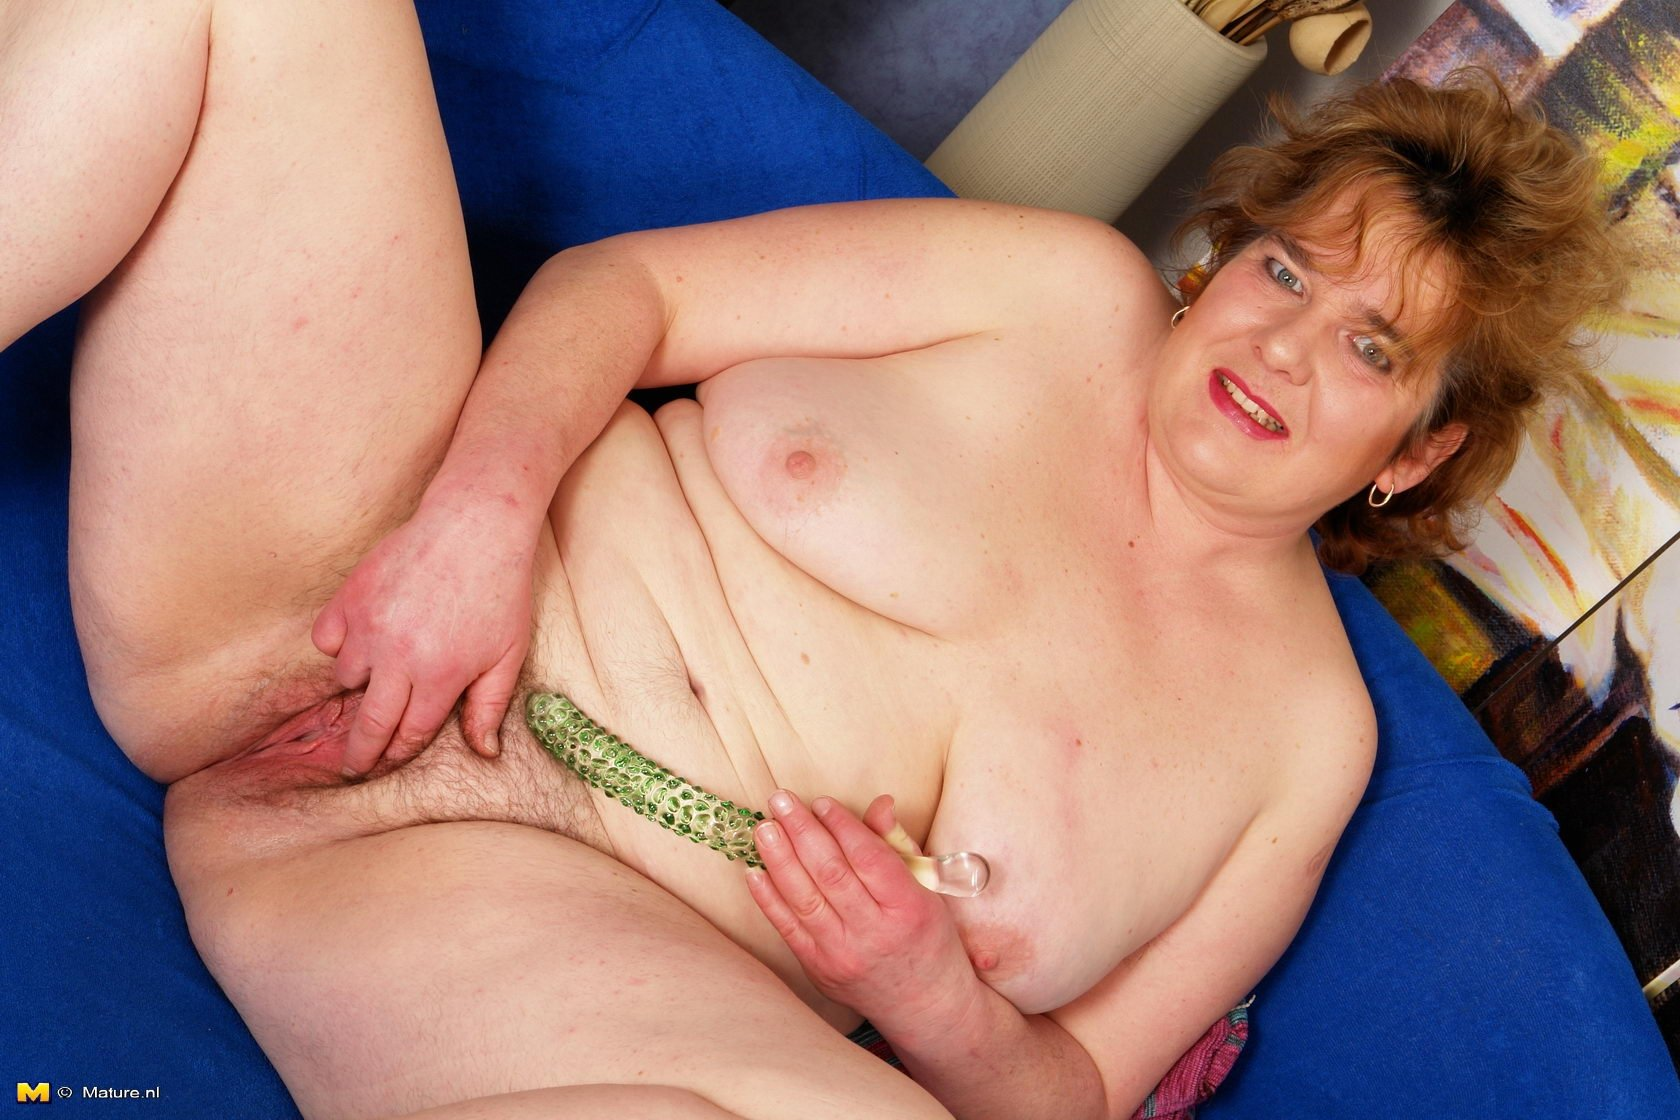 Nude amateur mature ladies #1